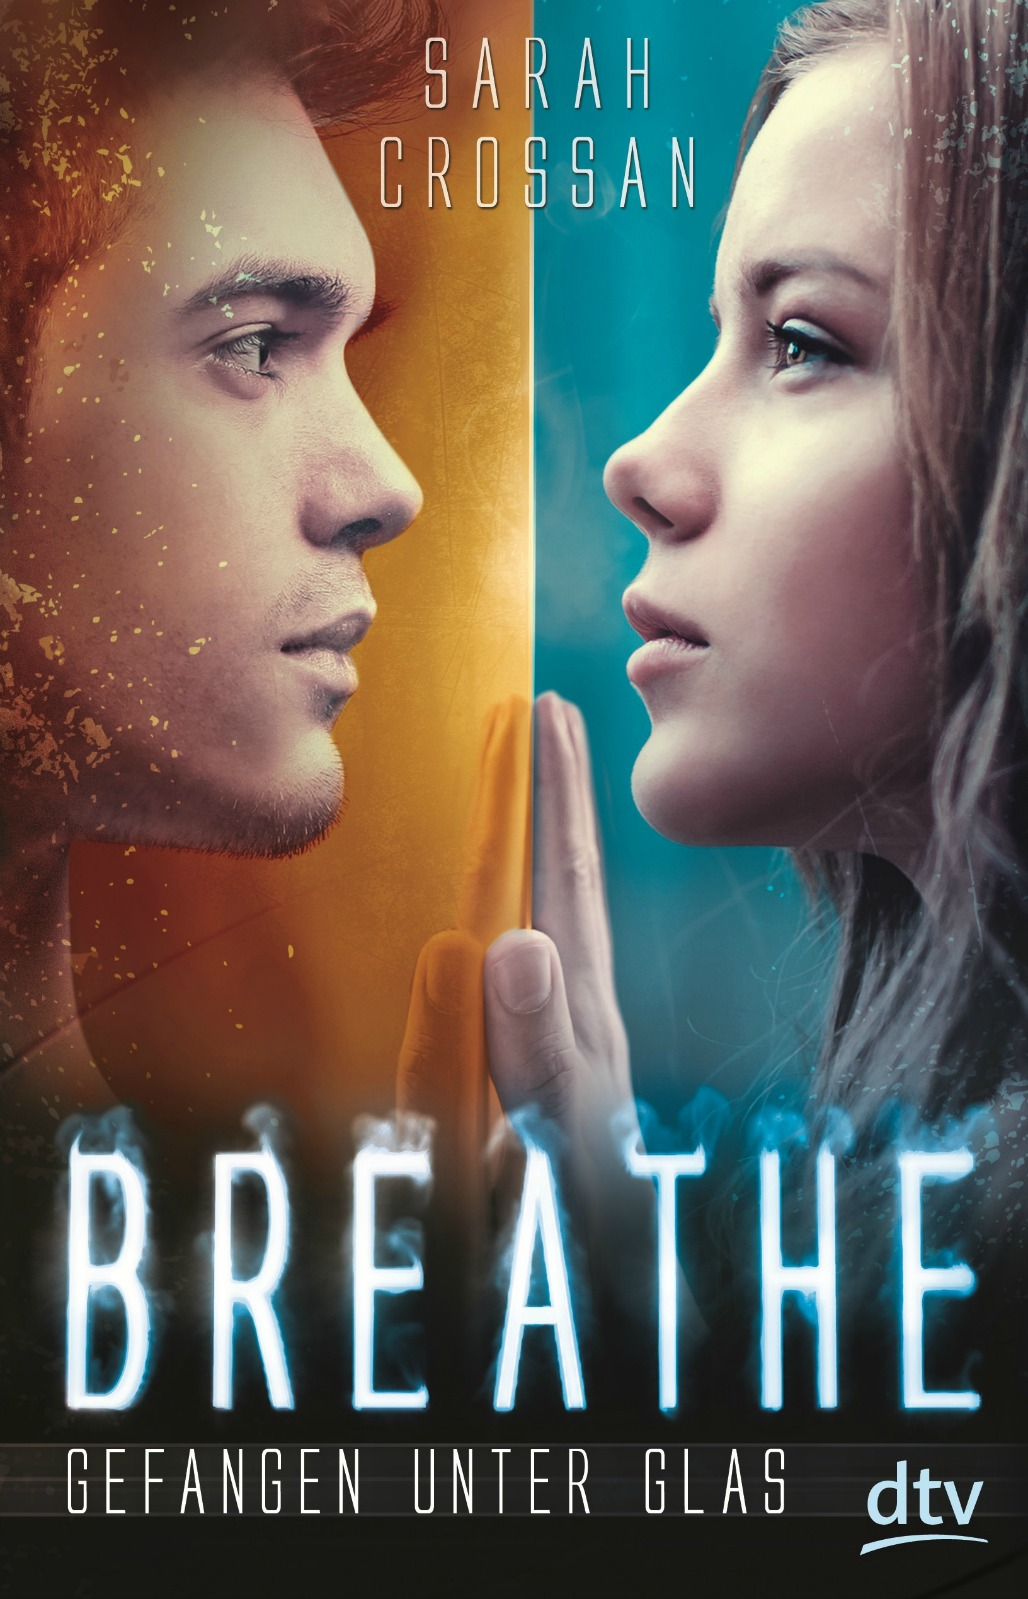 http://privatkino.files.wordpress.com/2013/03/breathe.jpg